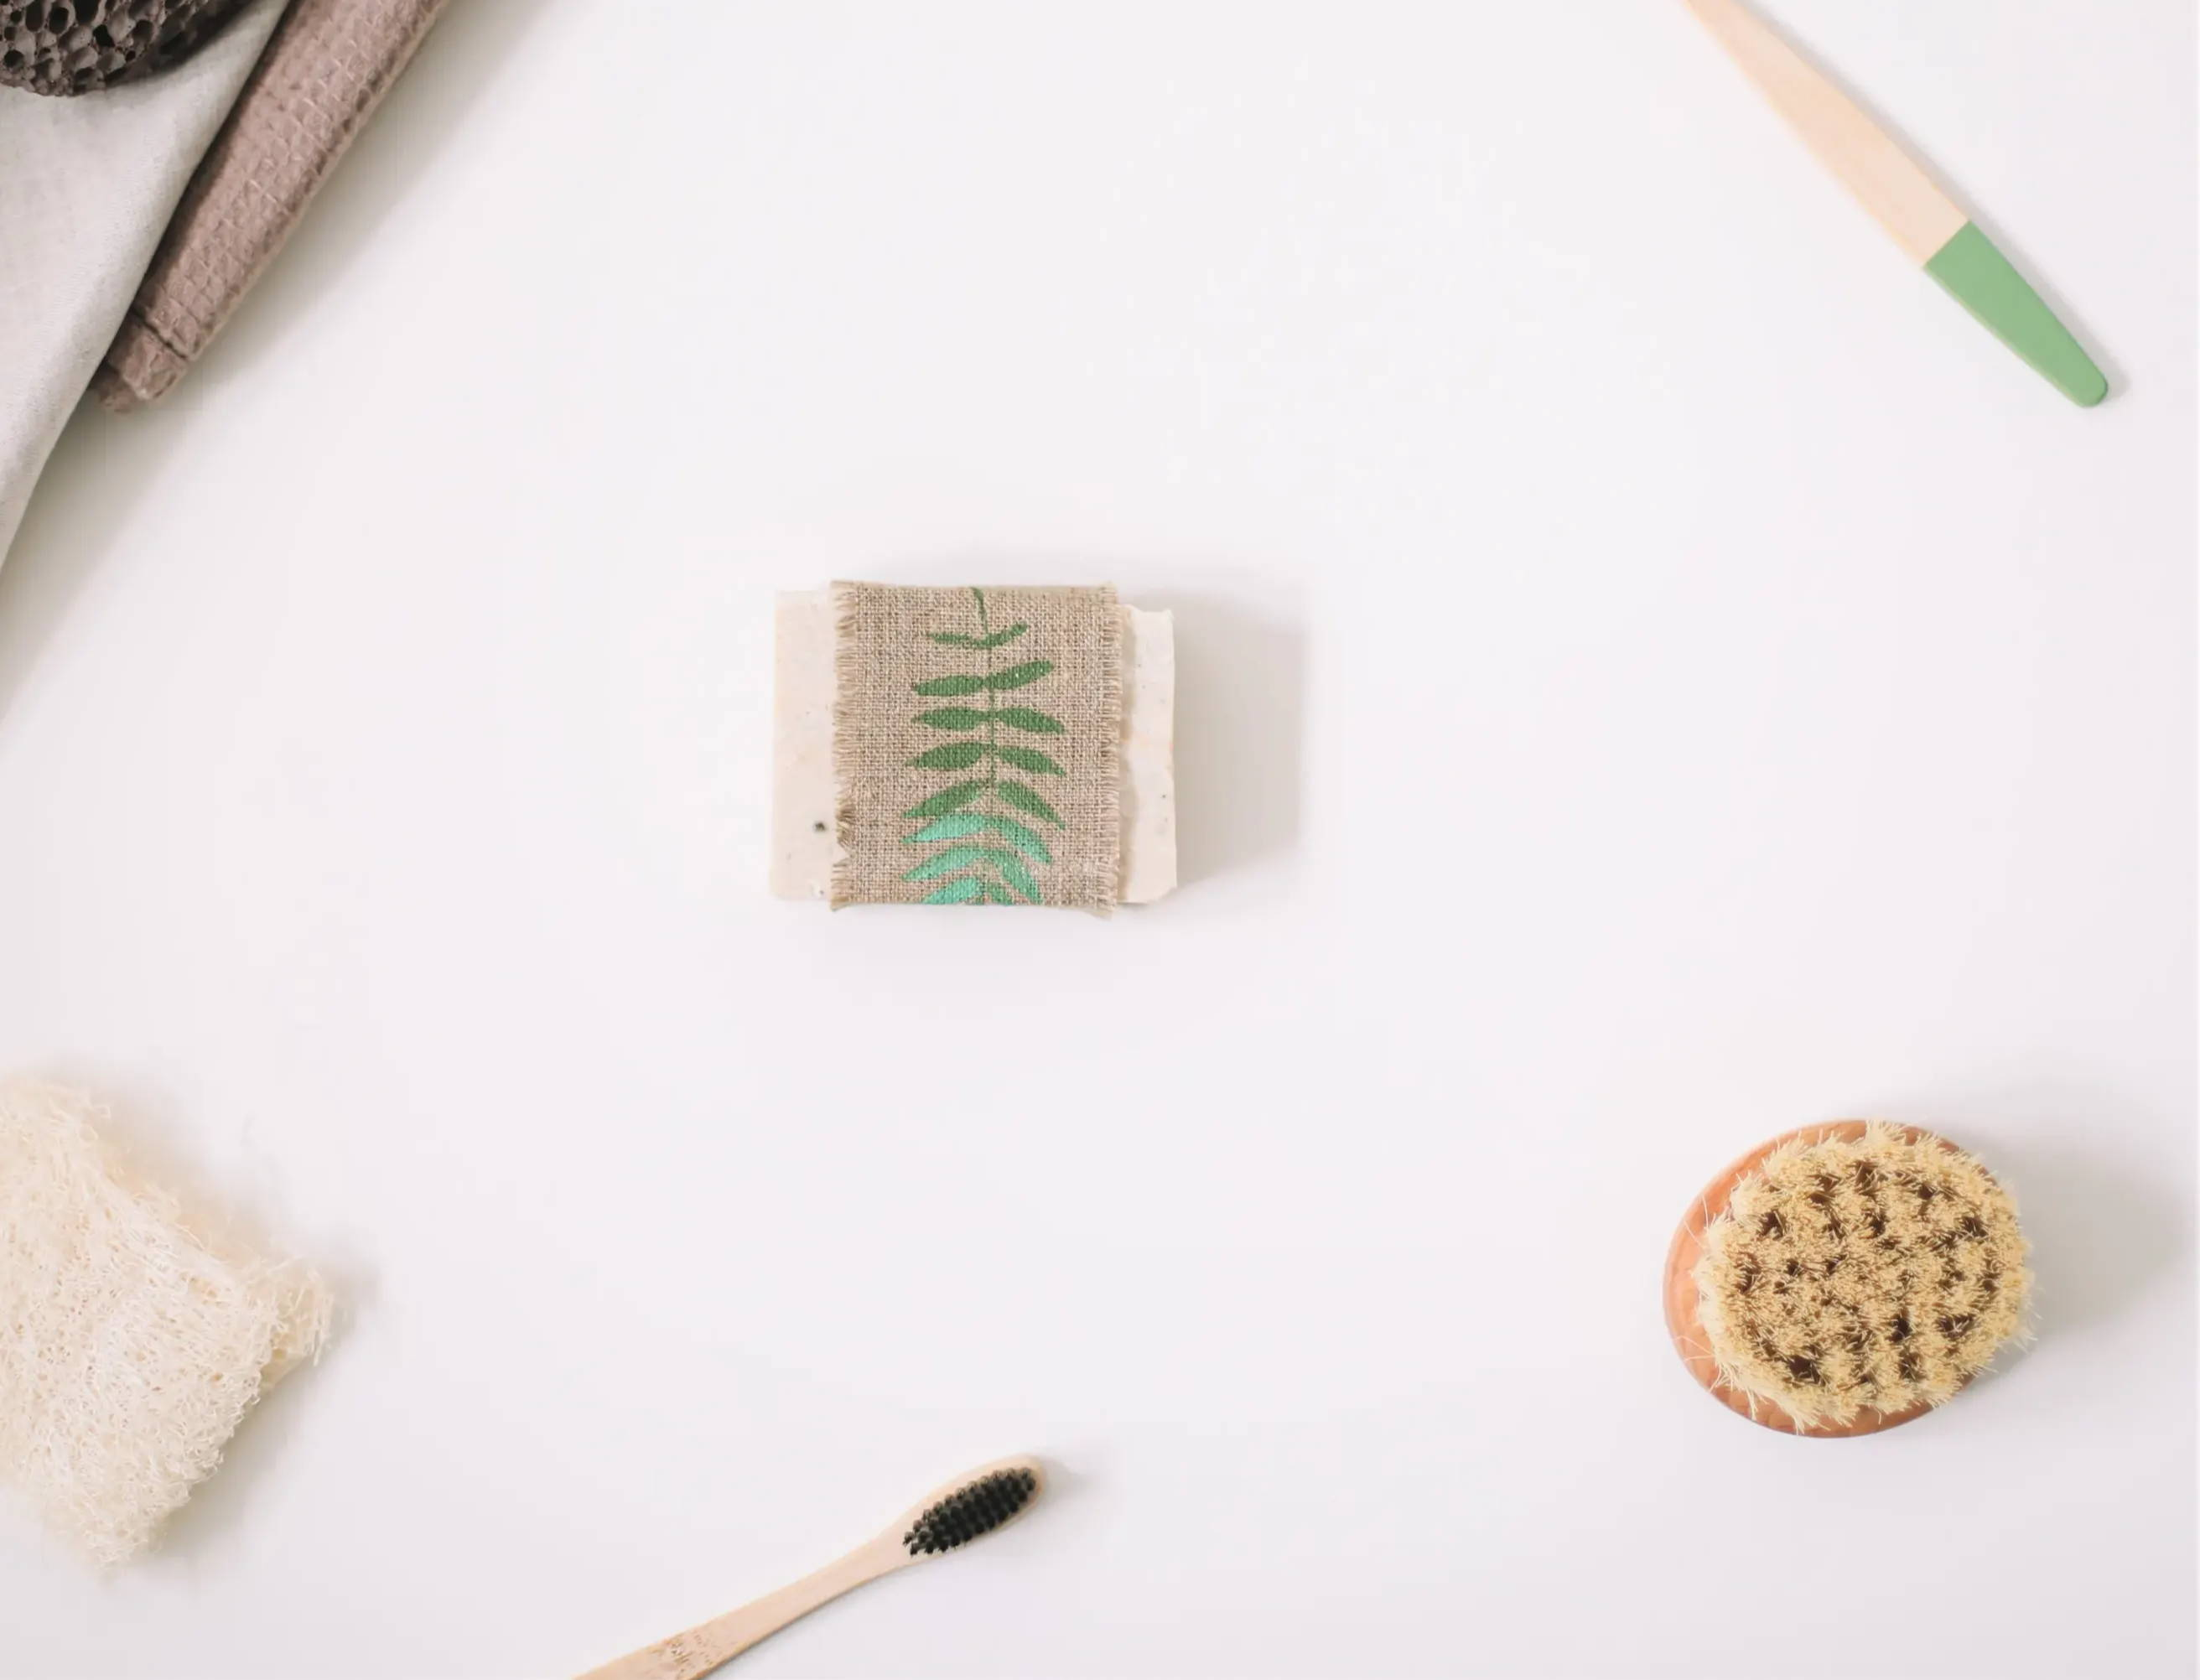 Low waste cosmetic products